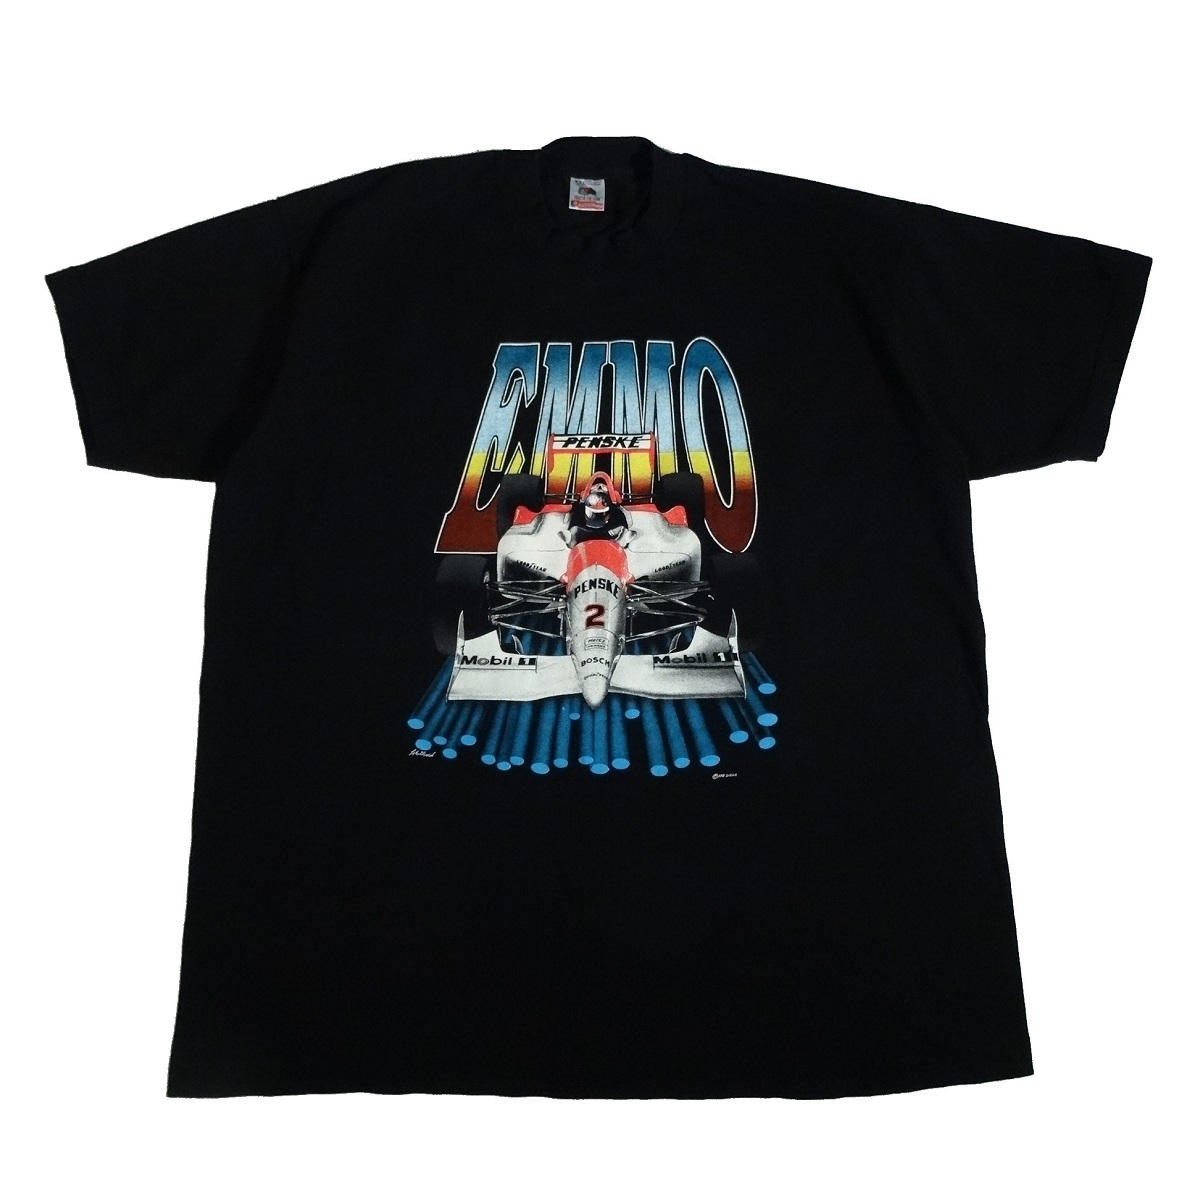 emerson fittipaldi emmo vintage 90s t shirt front